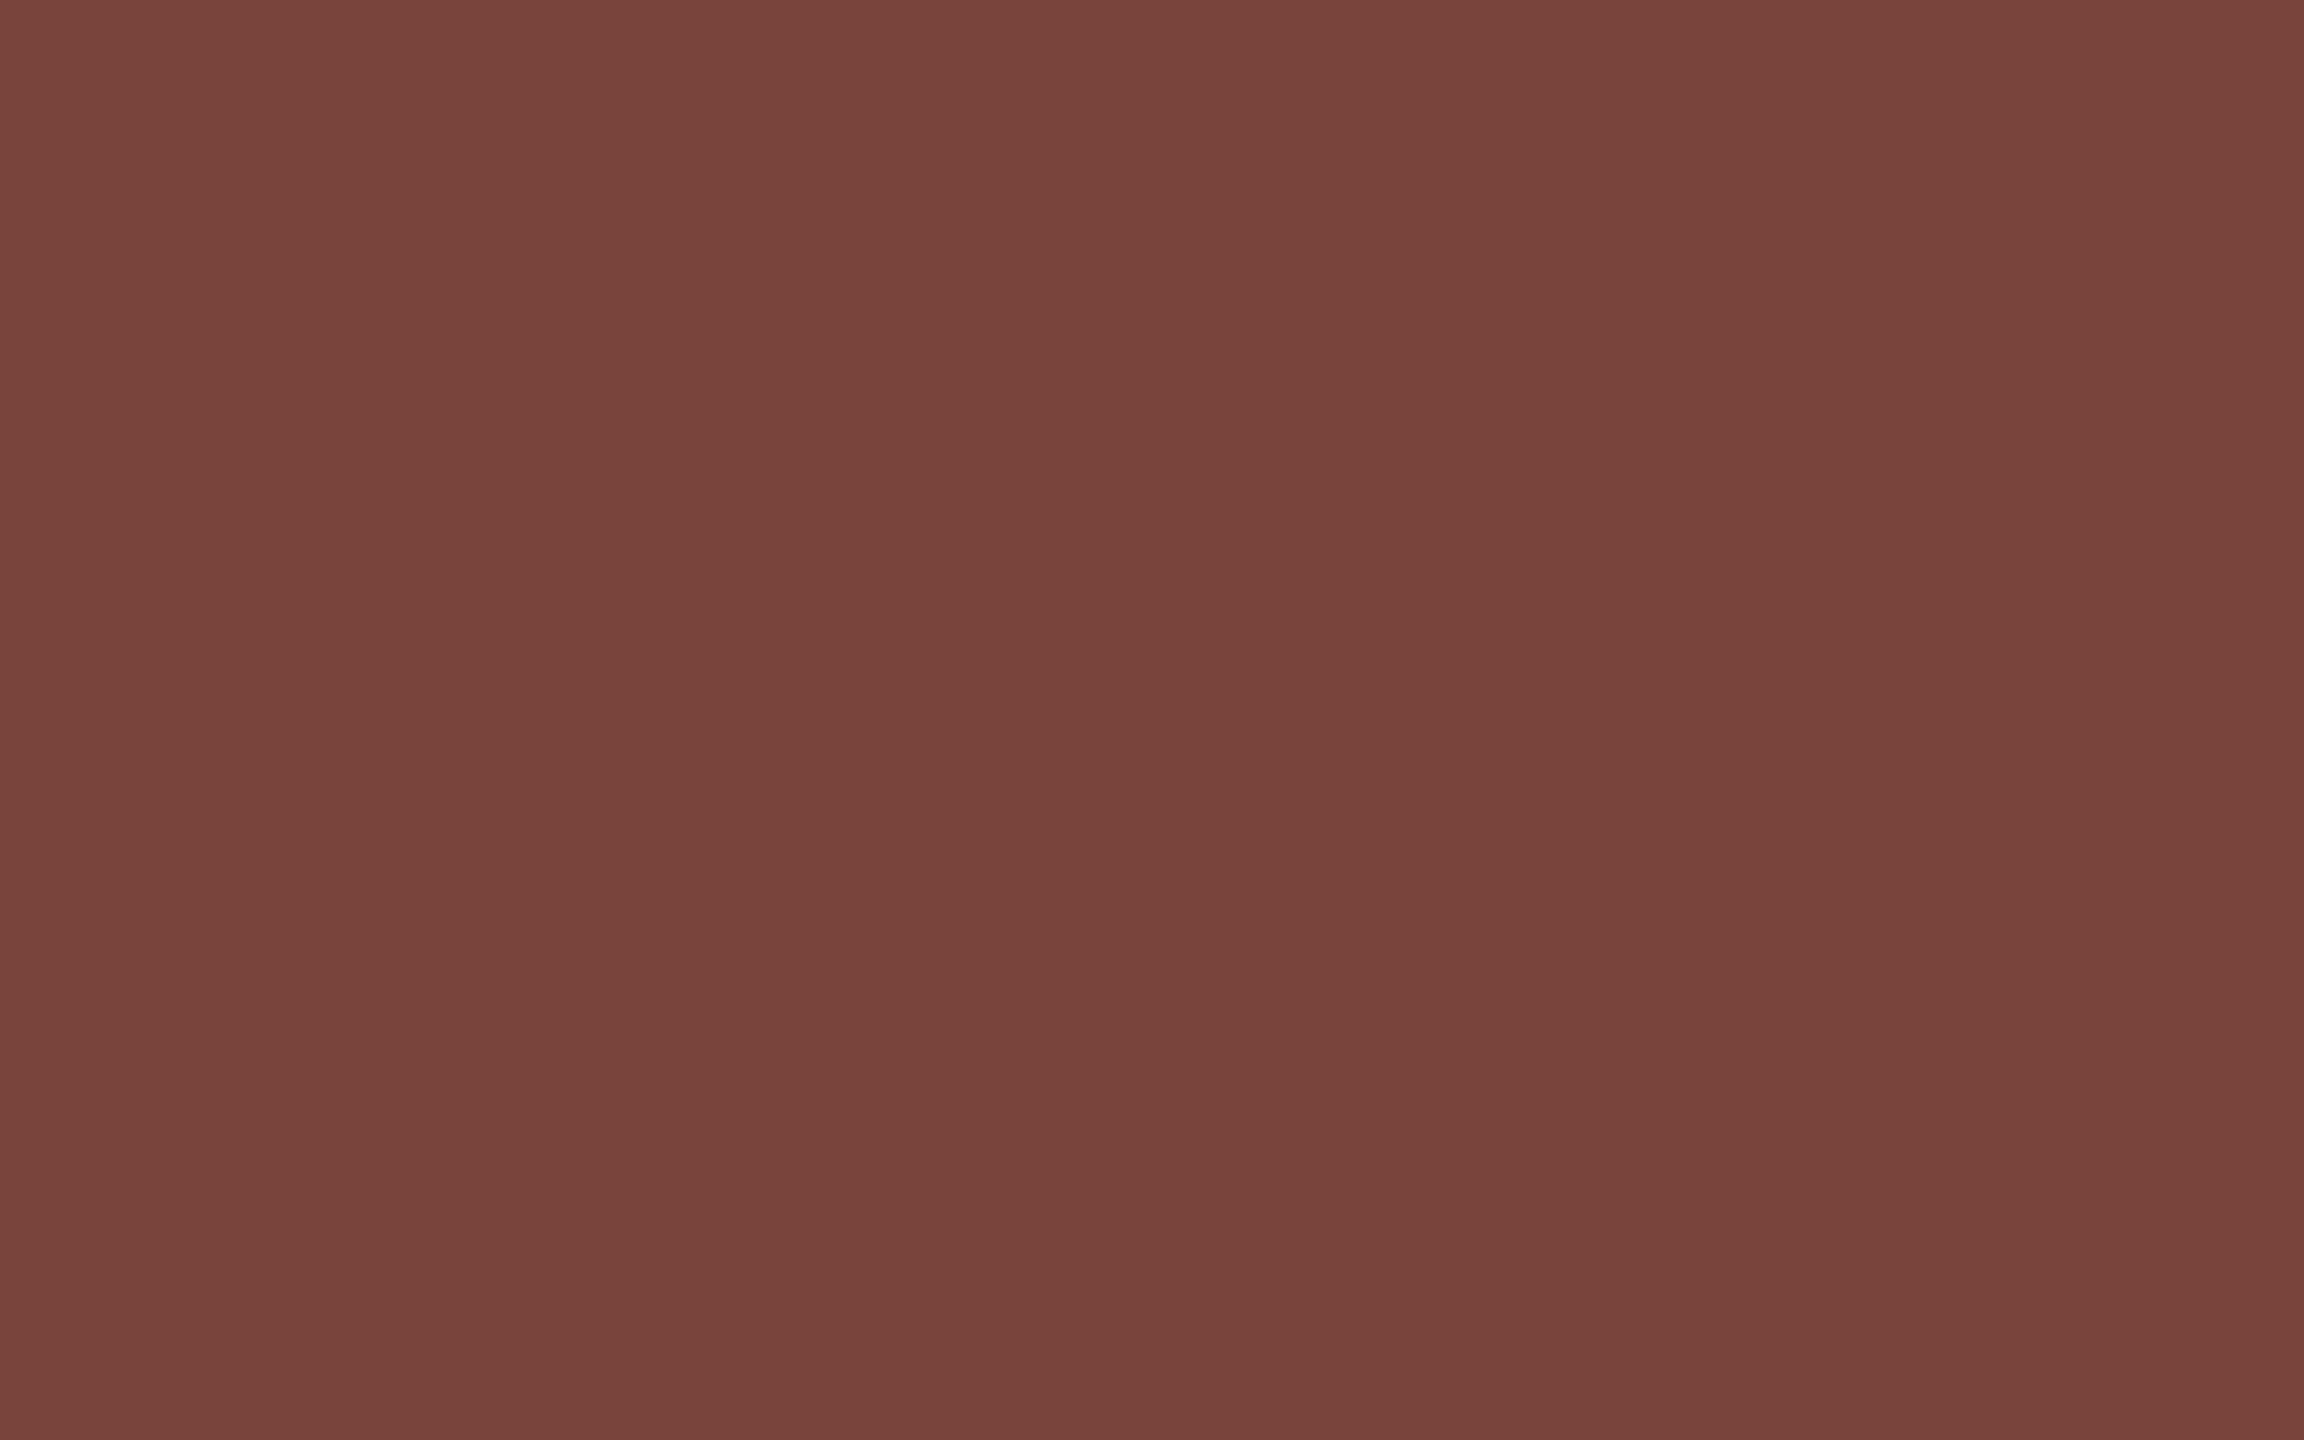 2304x1440 Medium Tuscan Red Solid Color Background